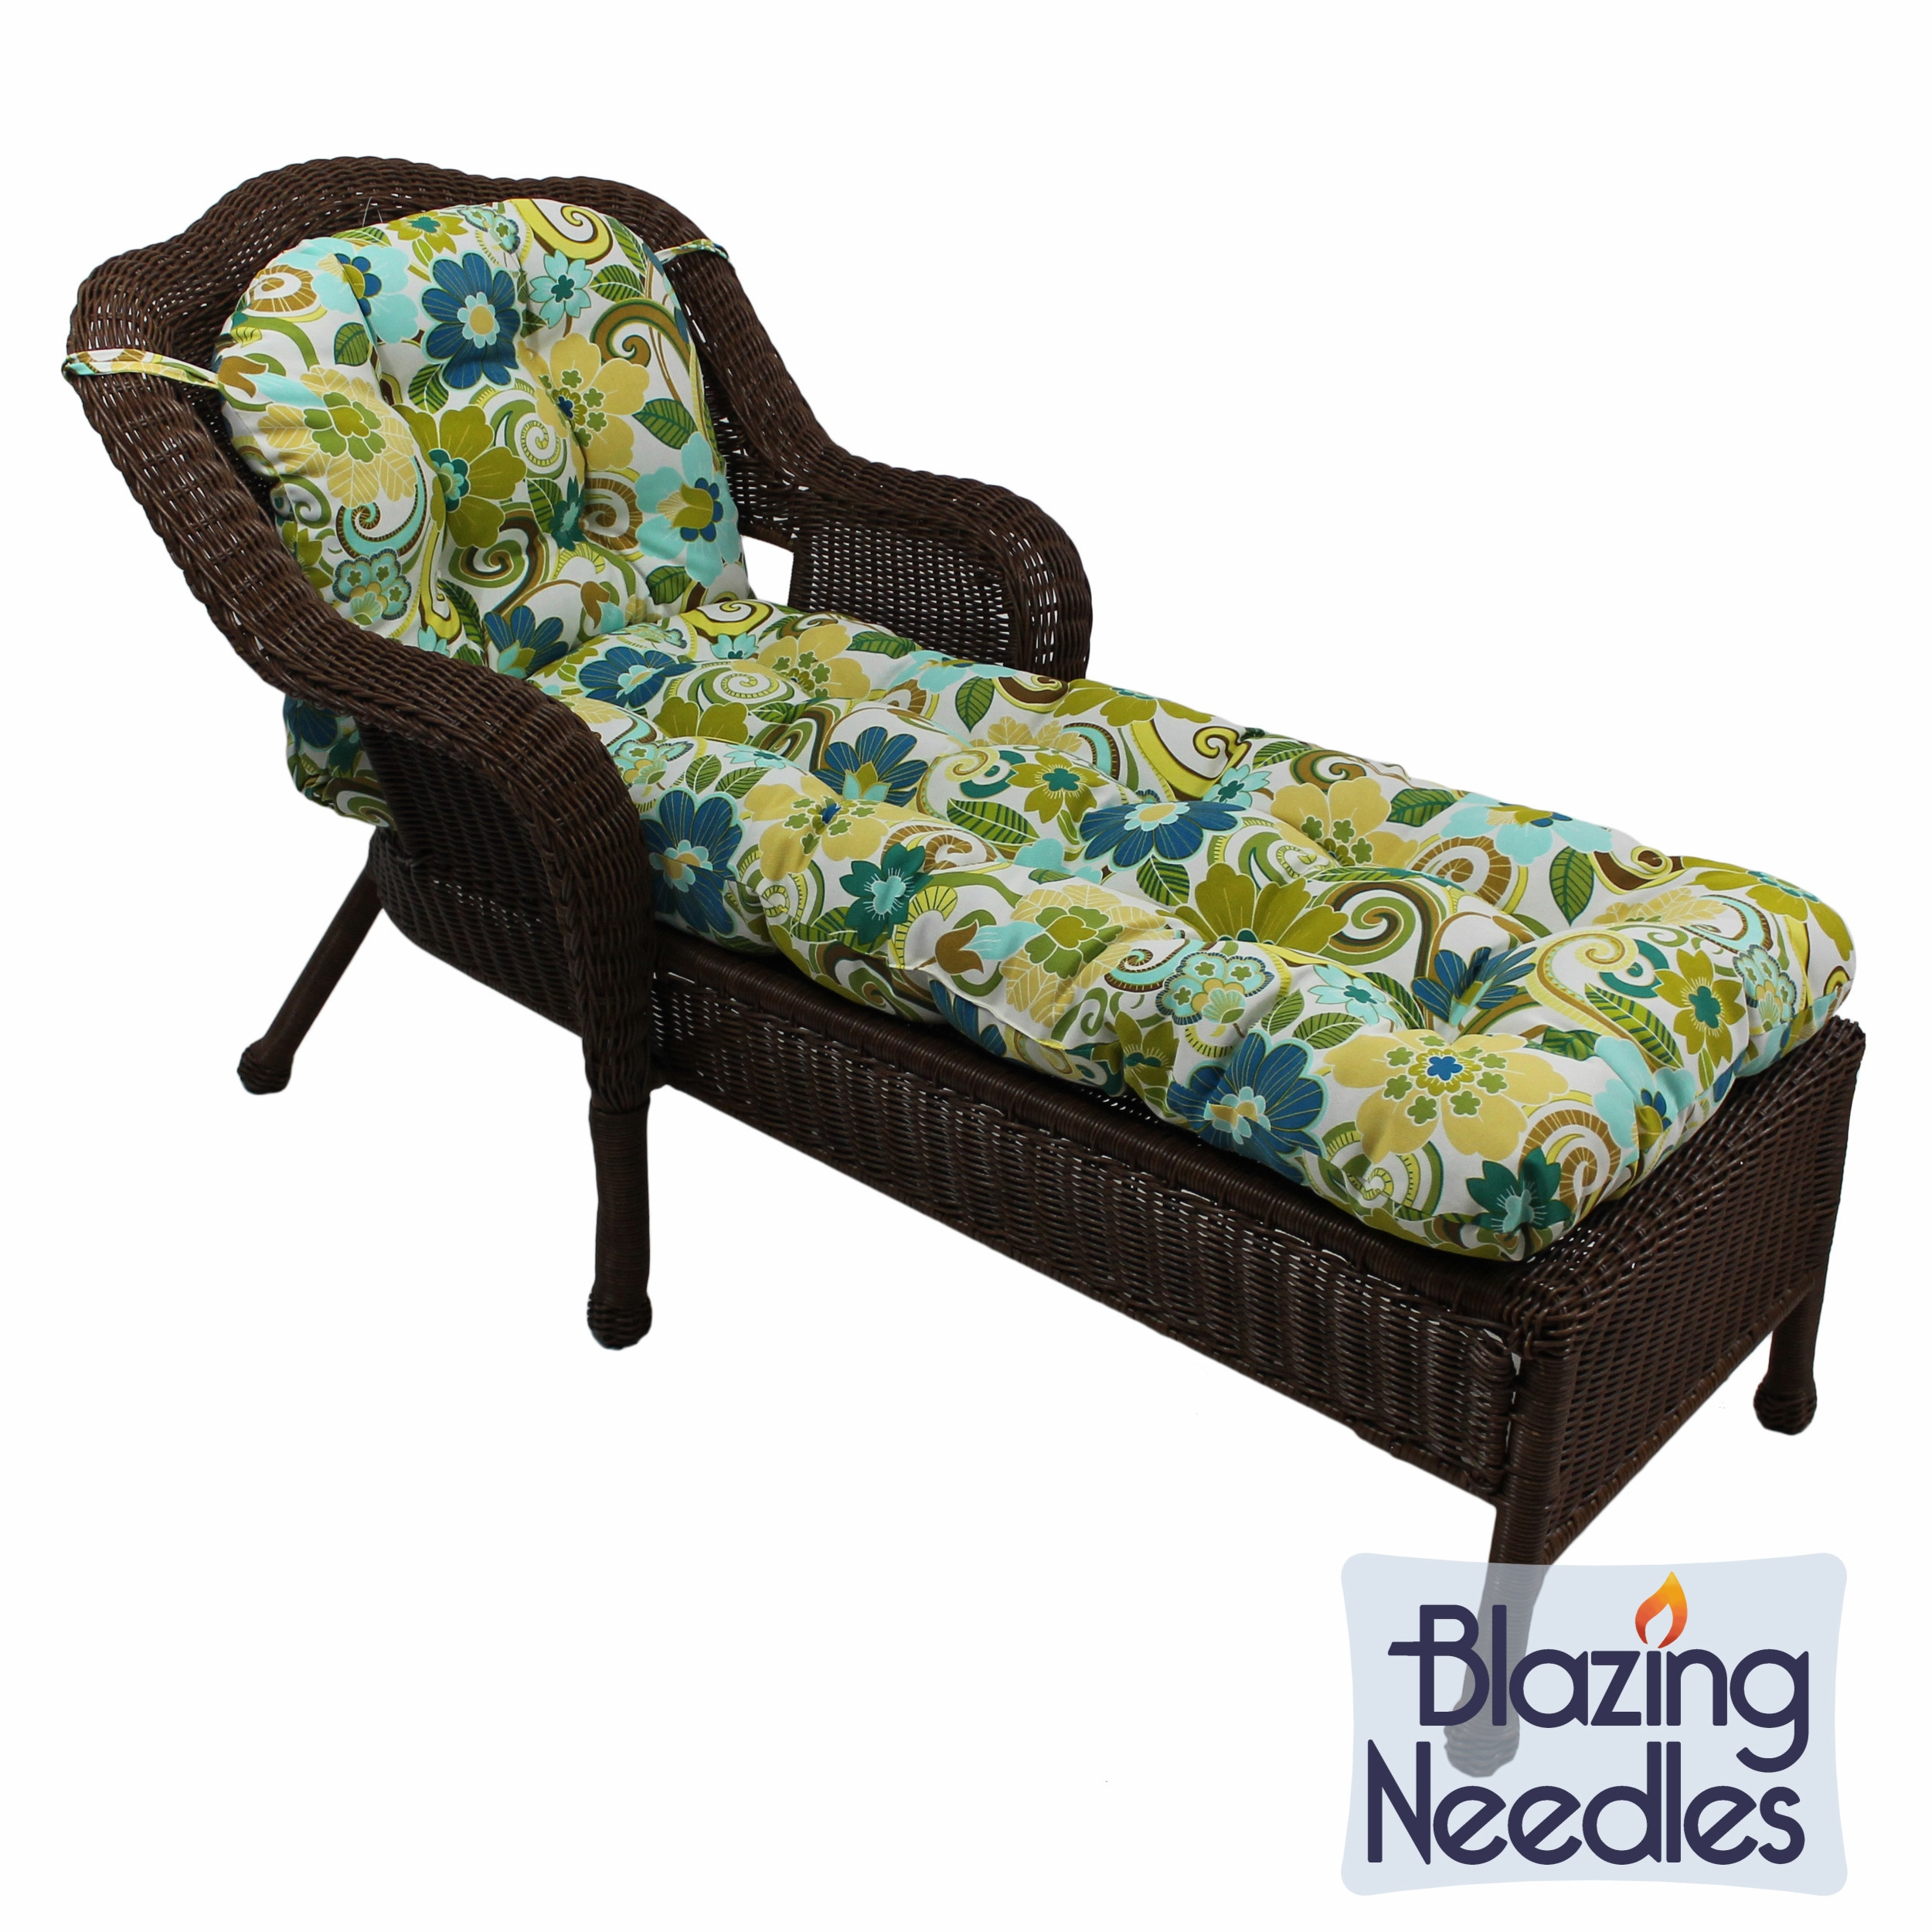 down amp home reviews cushion wade chaise photos lounge improvement christian luxury outdoor graphics of fresh logan